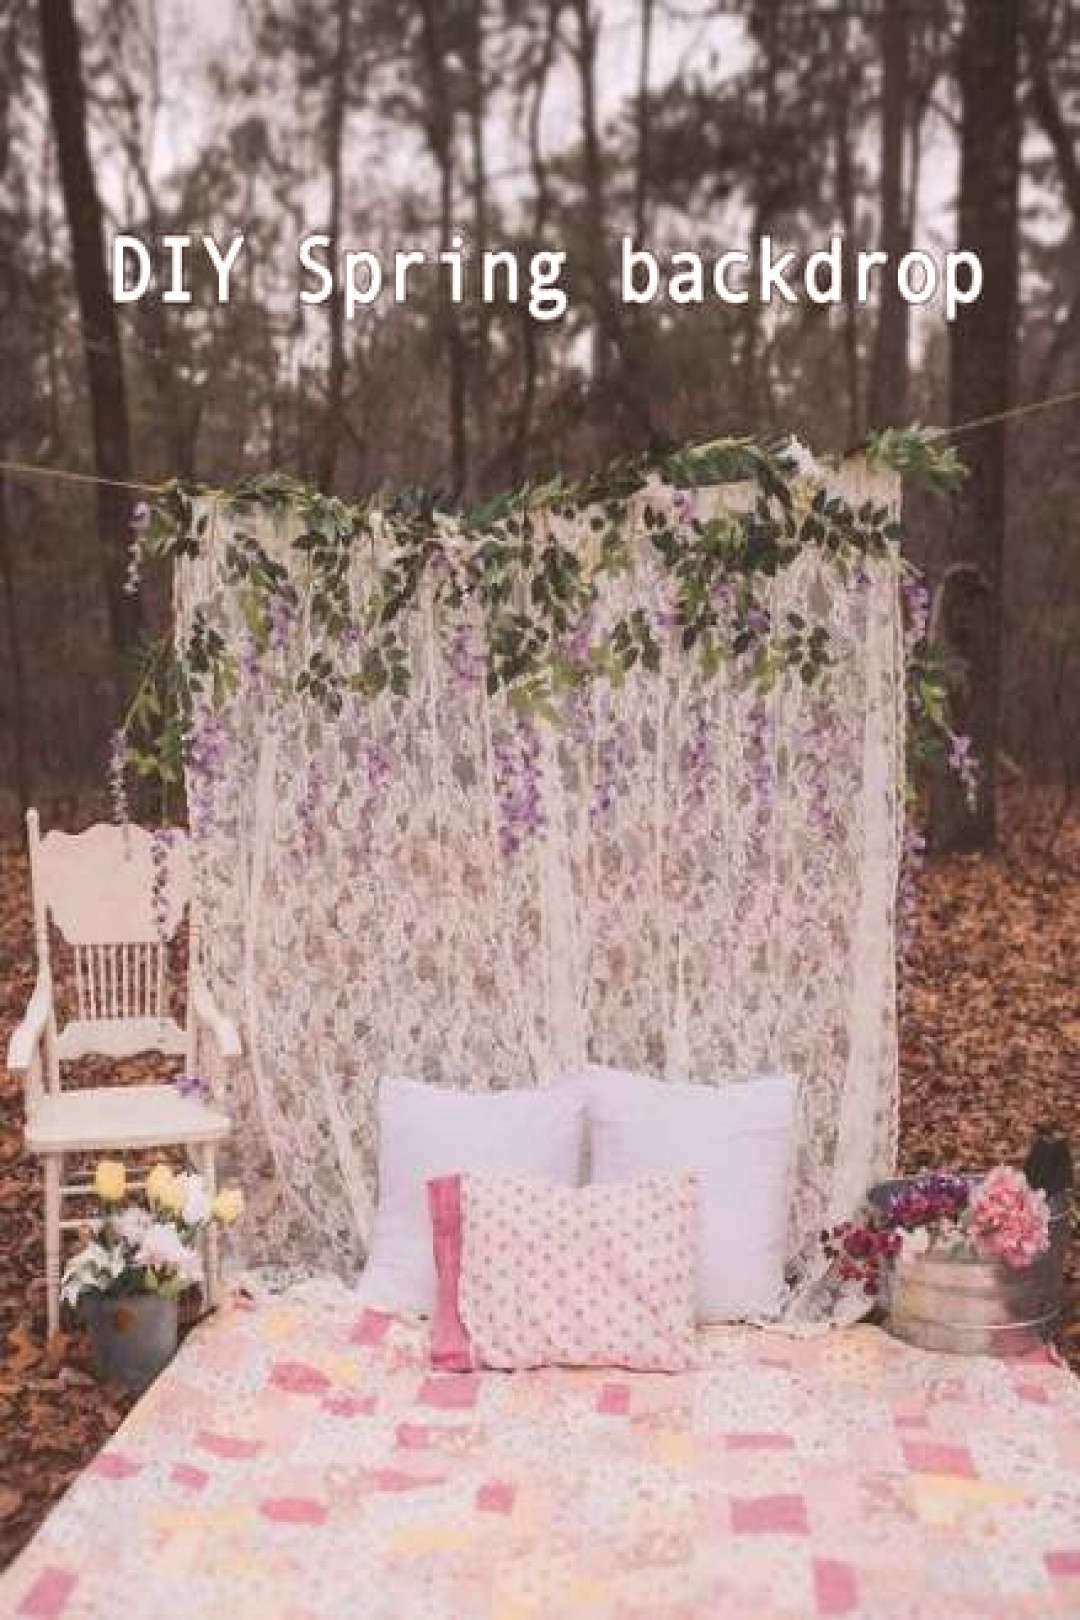 New photography diy backdrops mini sessions 34 Ideas New photography diy backdrops mini sessions 34